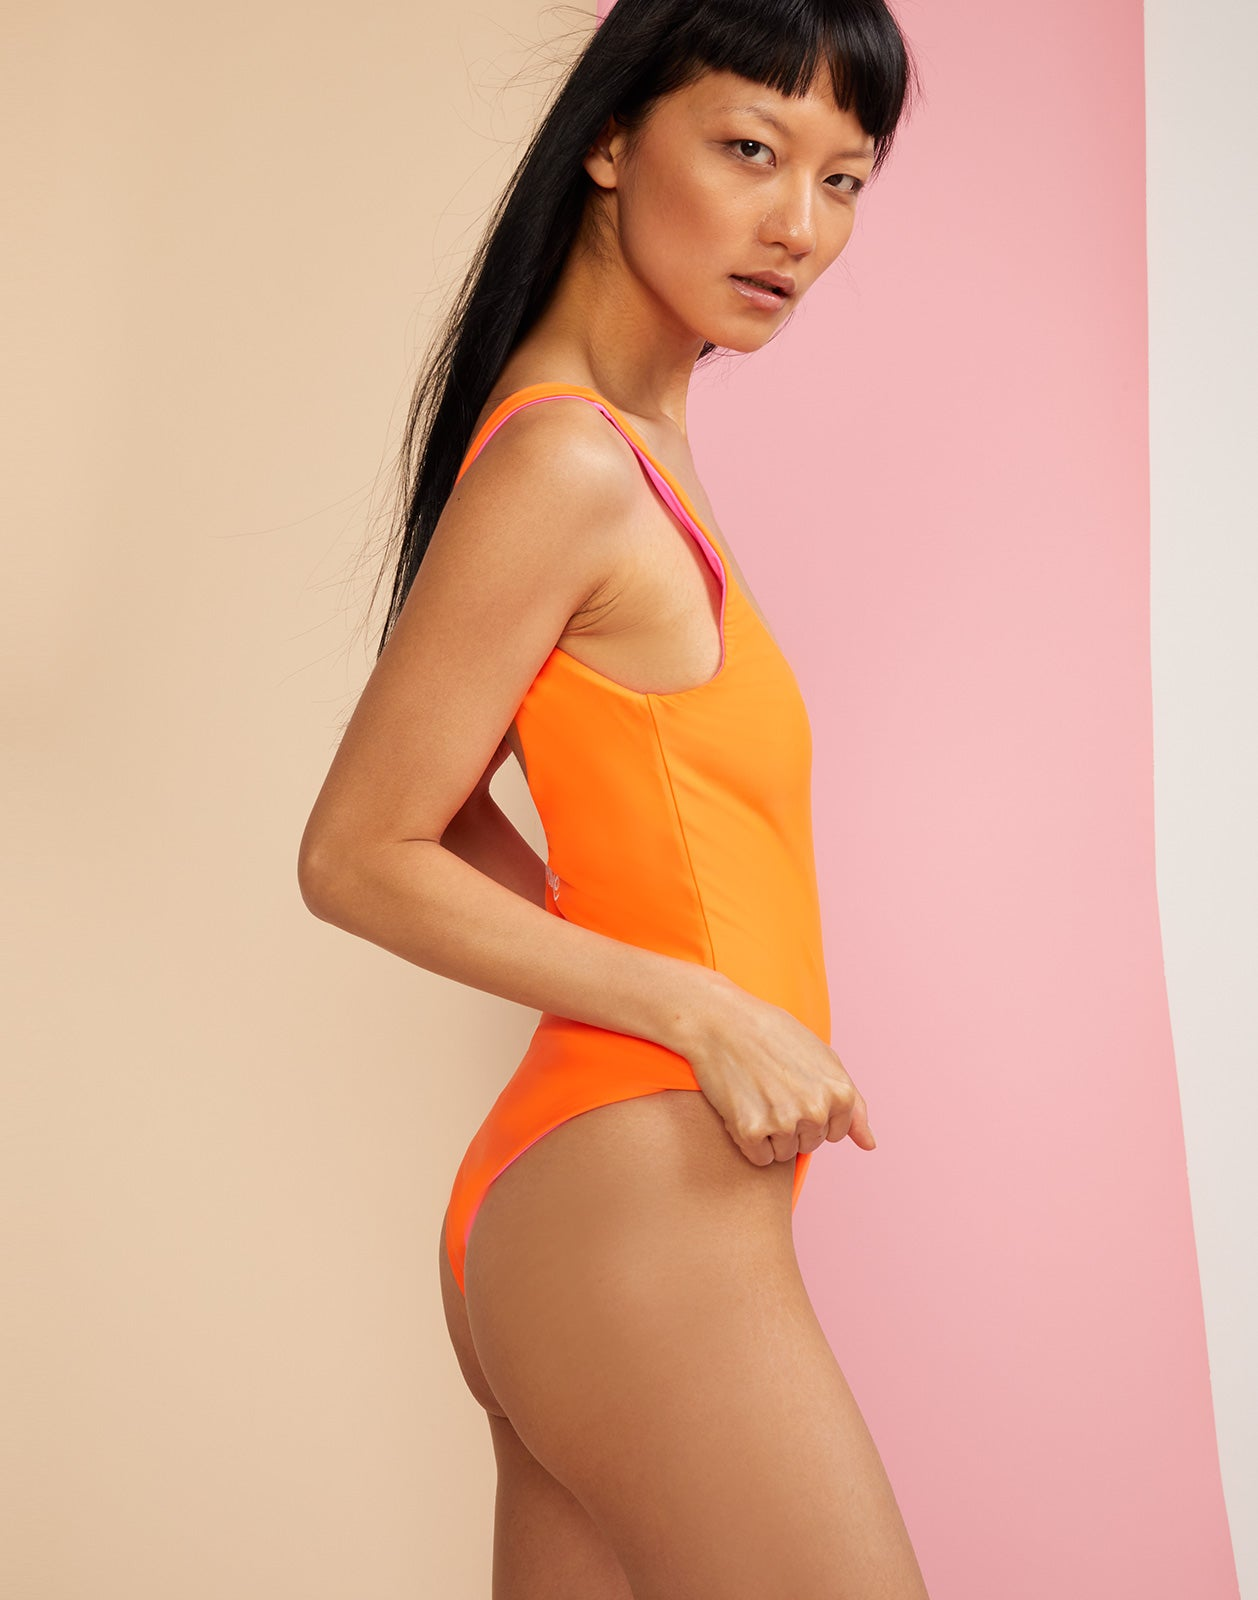 Side view of 'lovedove' swimsuit on orange side.